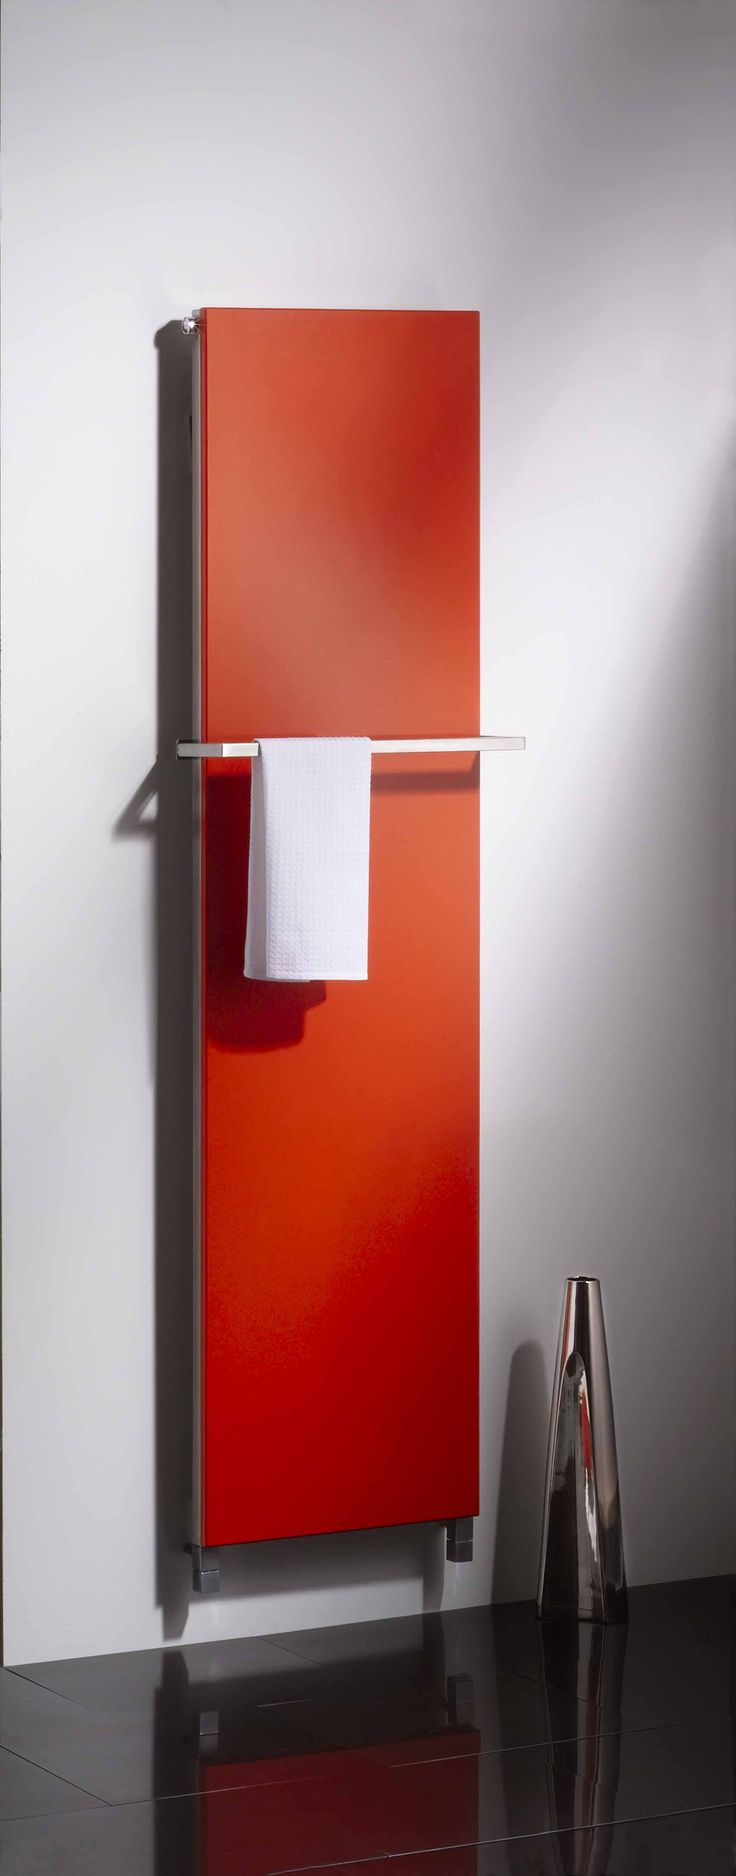 To celebrate Archiproducts focus on 'Orange Products' we thought we'd feature one of our orange radiators. This one is ideal for kitchens & hallways and can be finished in granite or quartz fascias... © Aestus